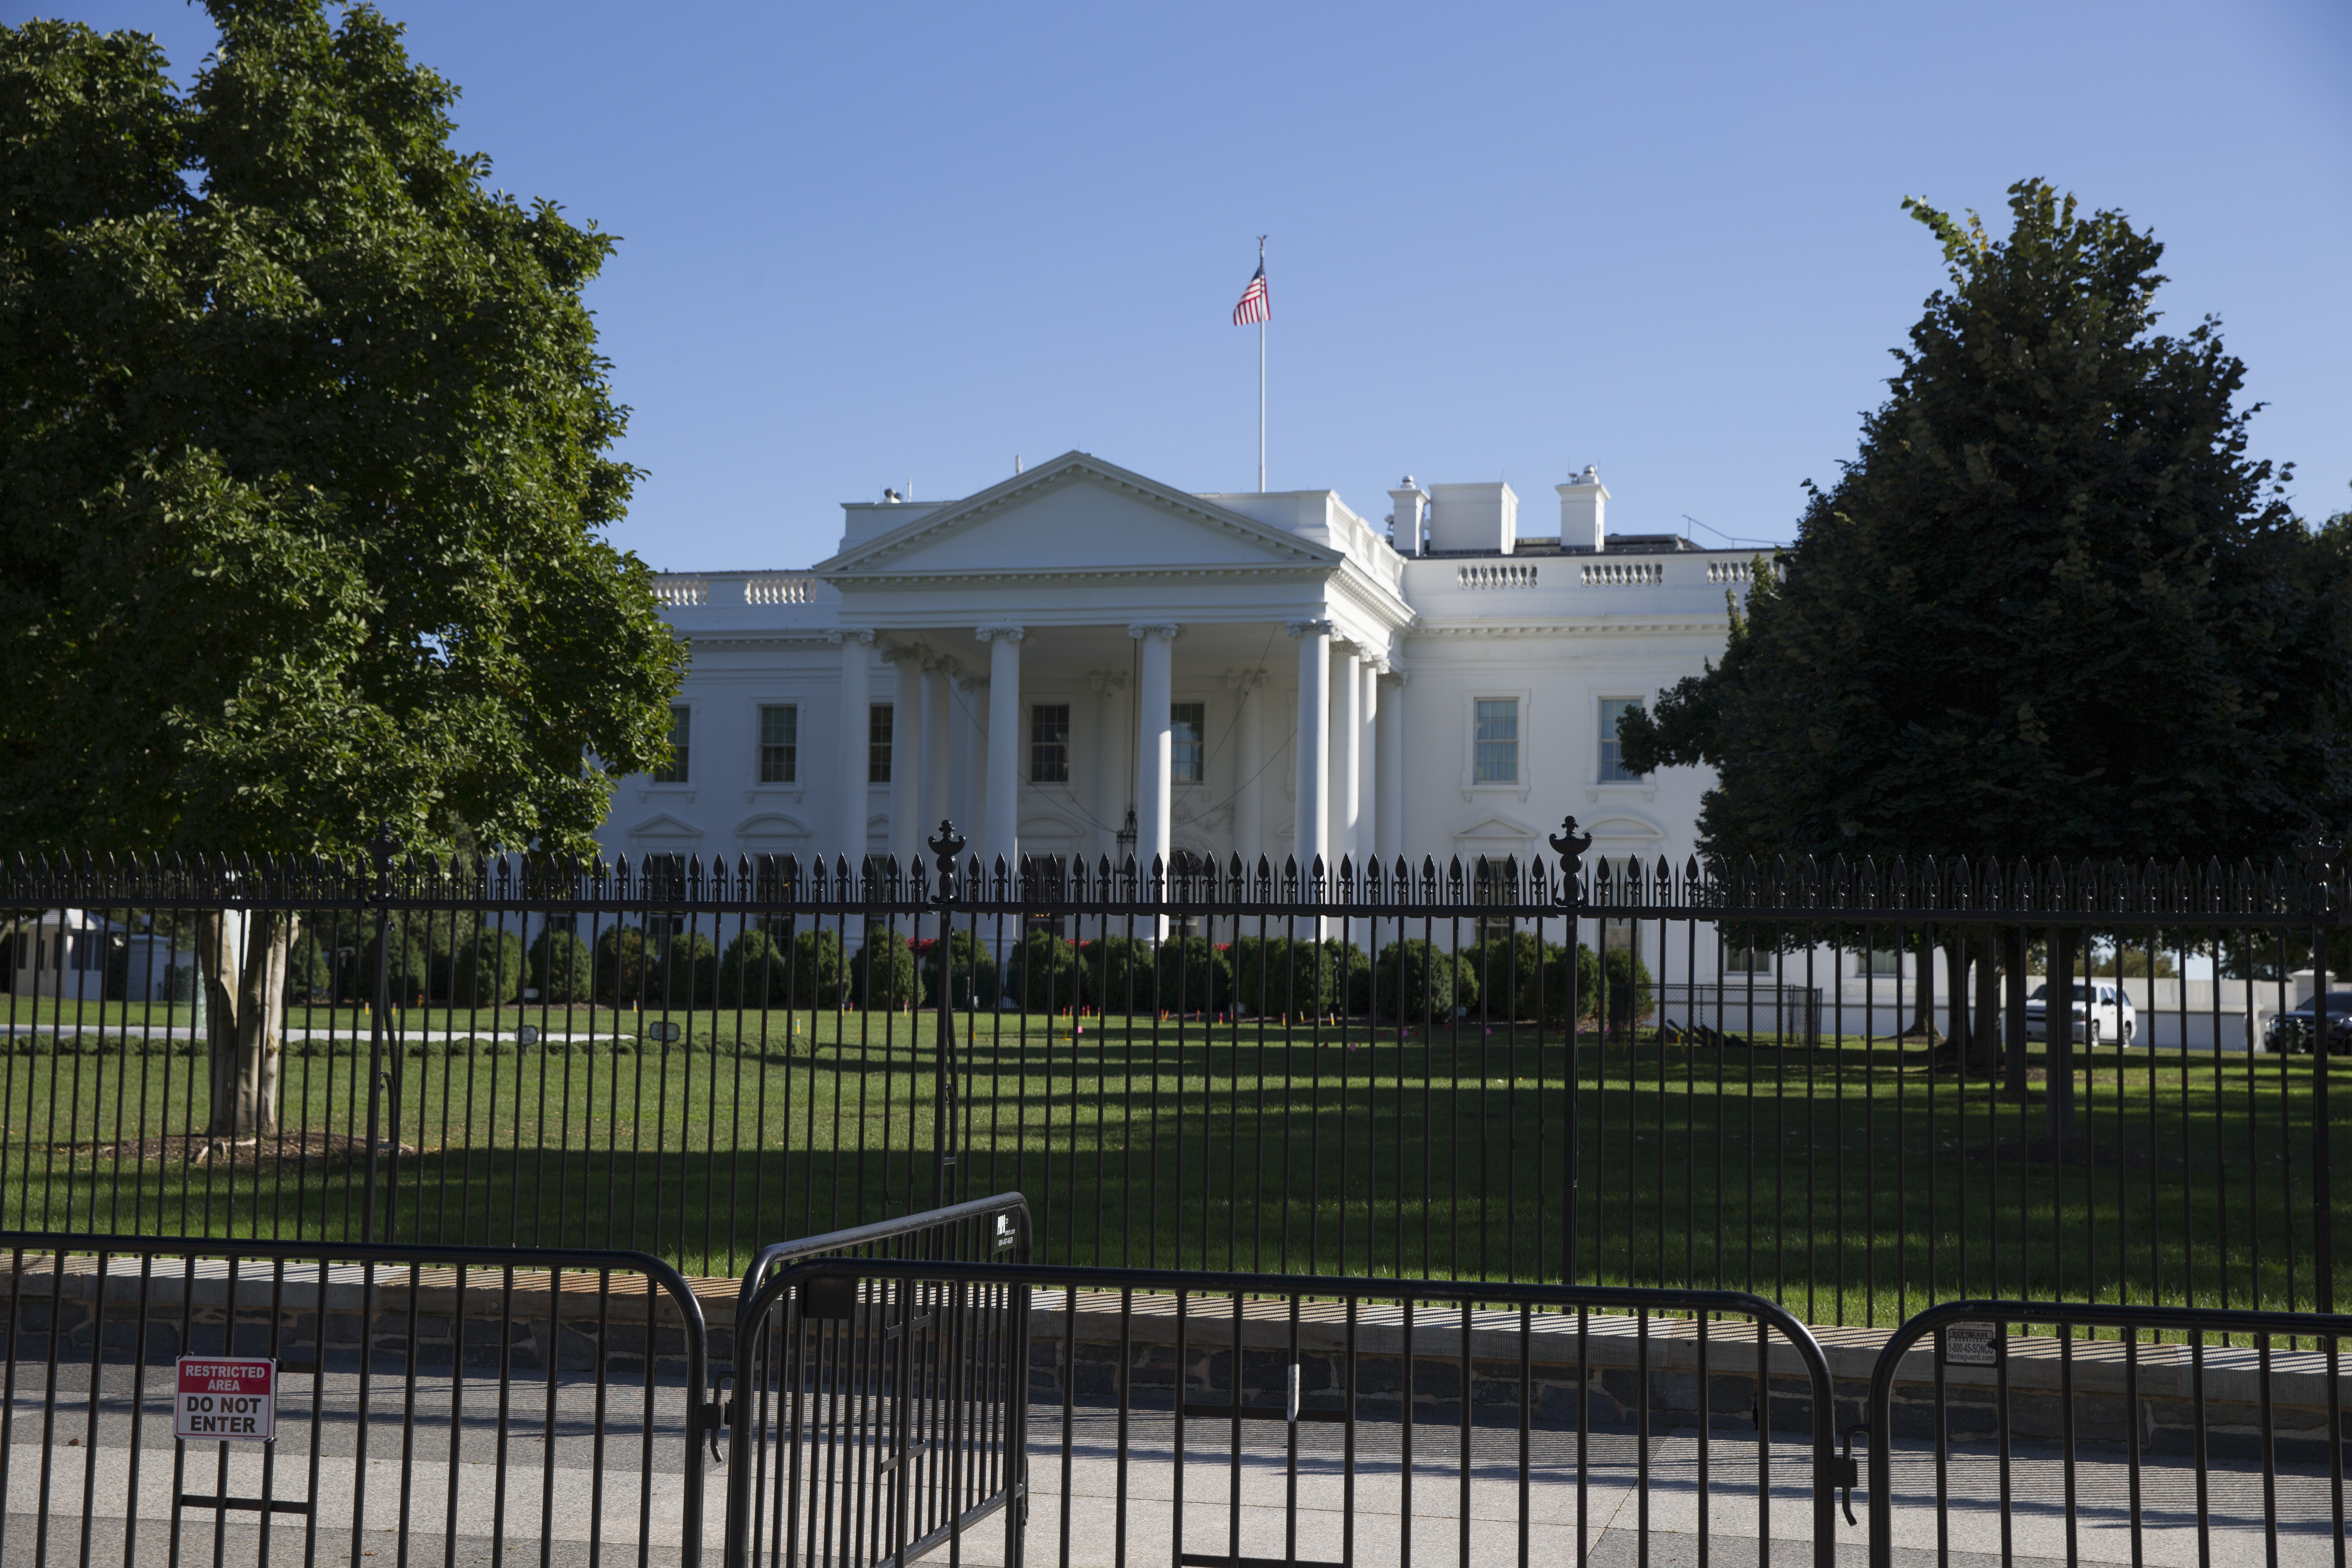 The Pennsylvania Avenue NW of the White House, with a security perimeter and its historic fence.